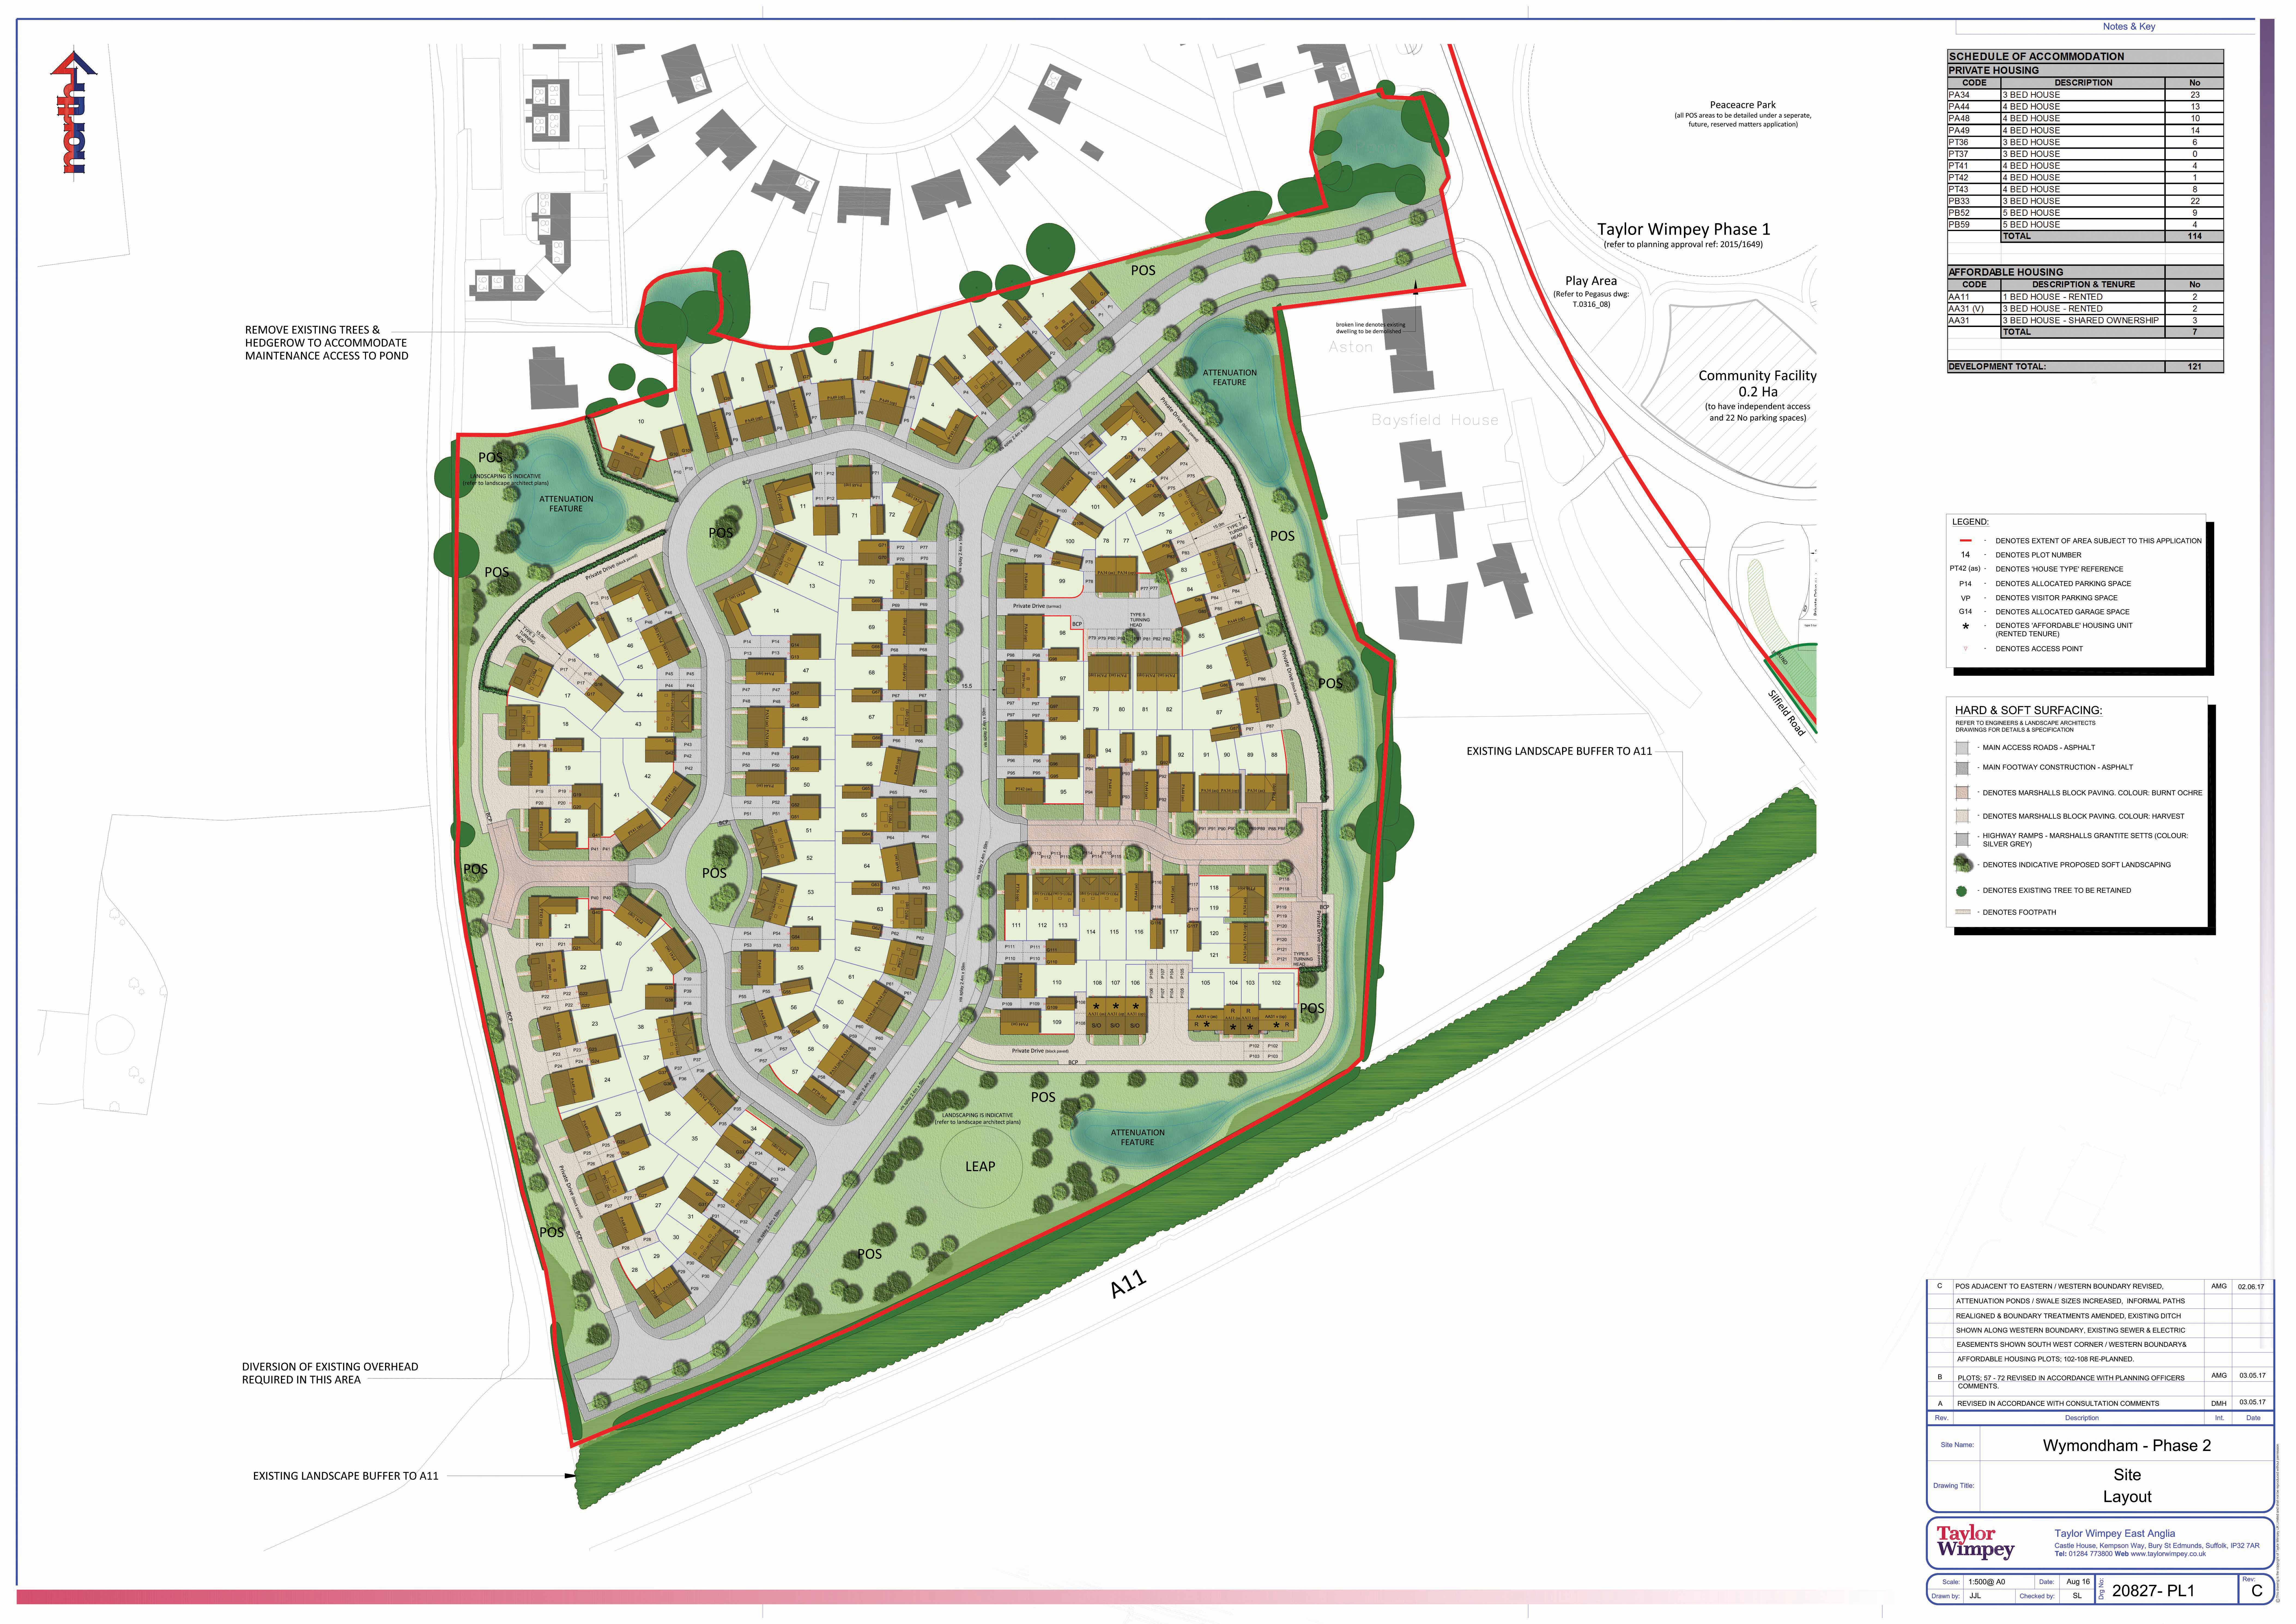 20827  Wymondham Ph2  Planning Layout C  colour0001